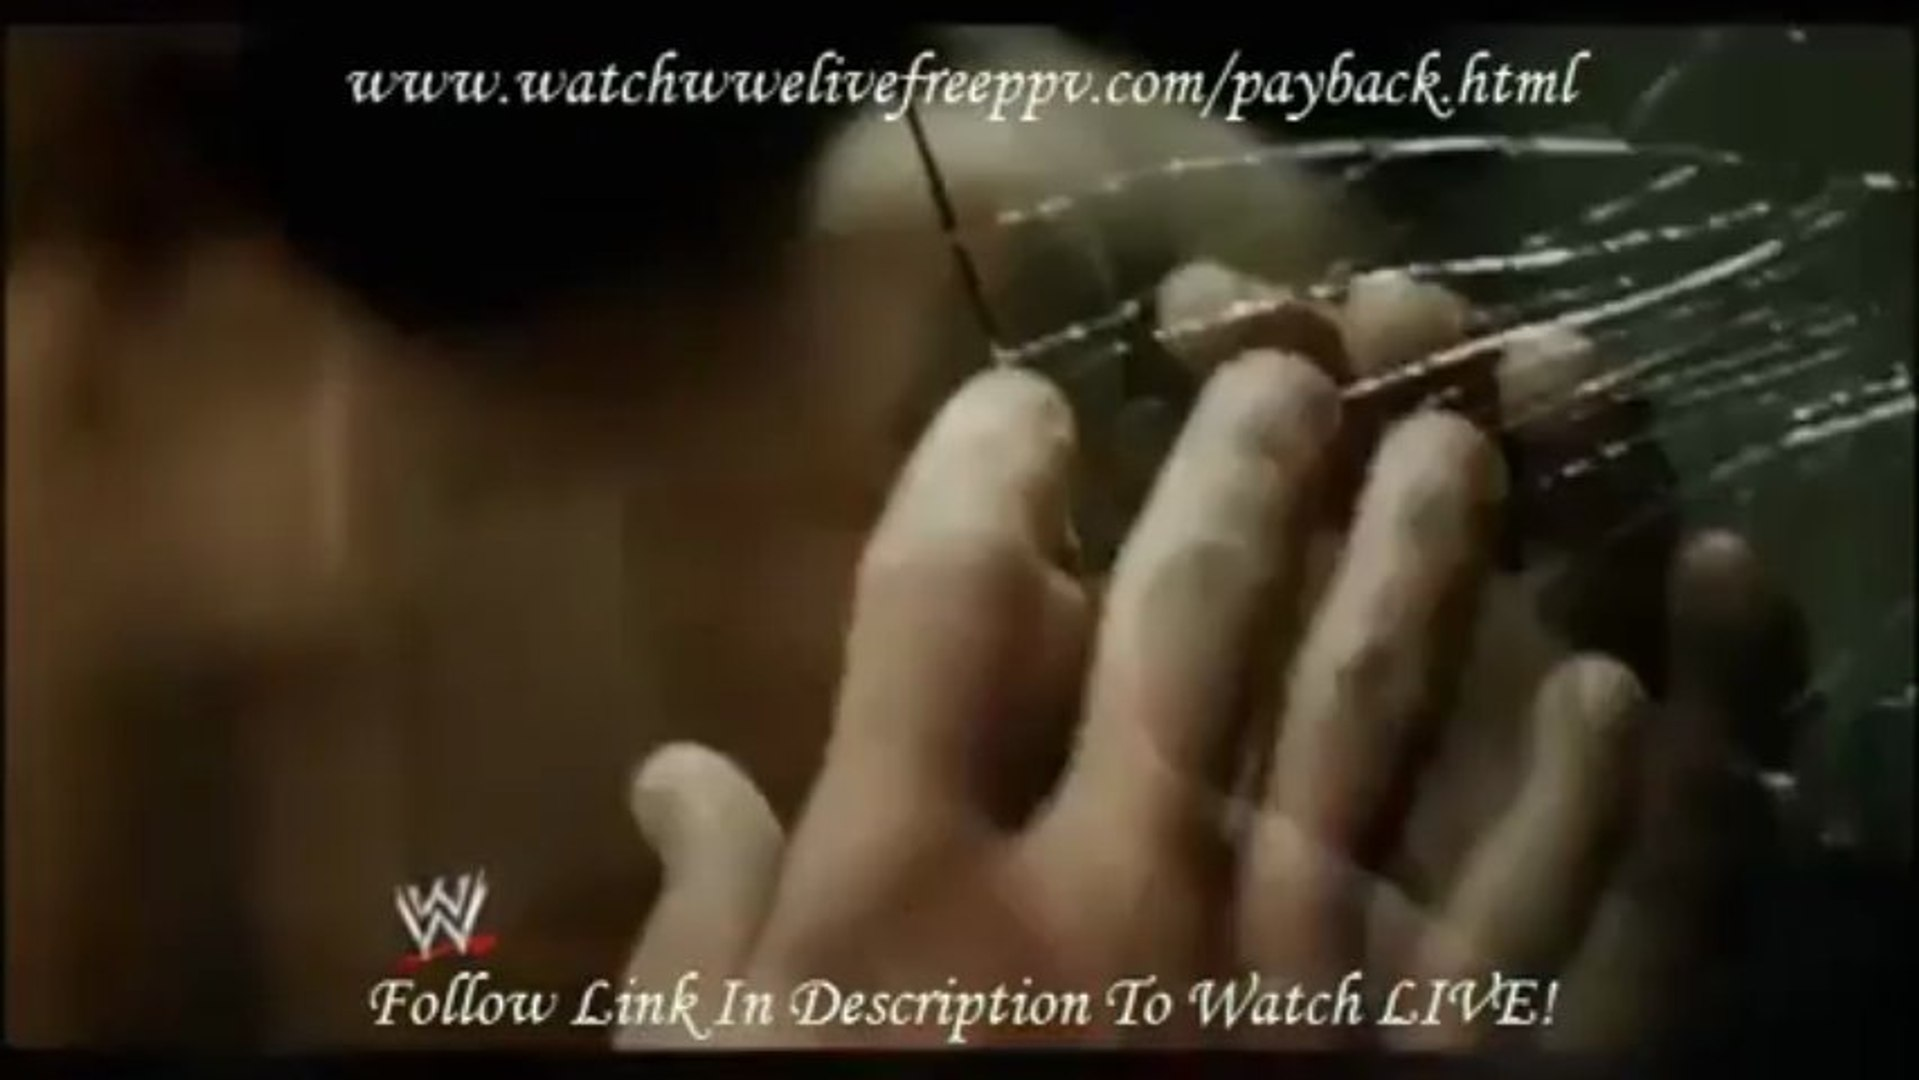 WWE Payback 2013 - 6/16/13 - 16th June 2013